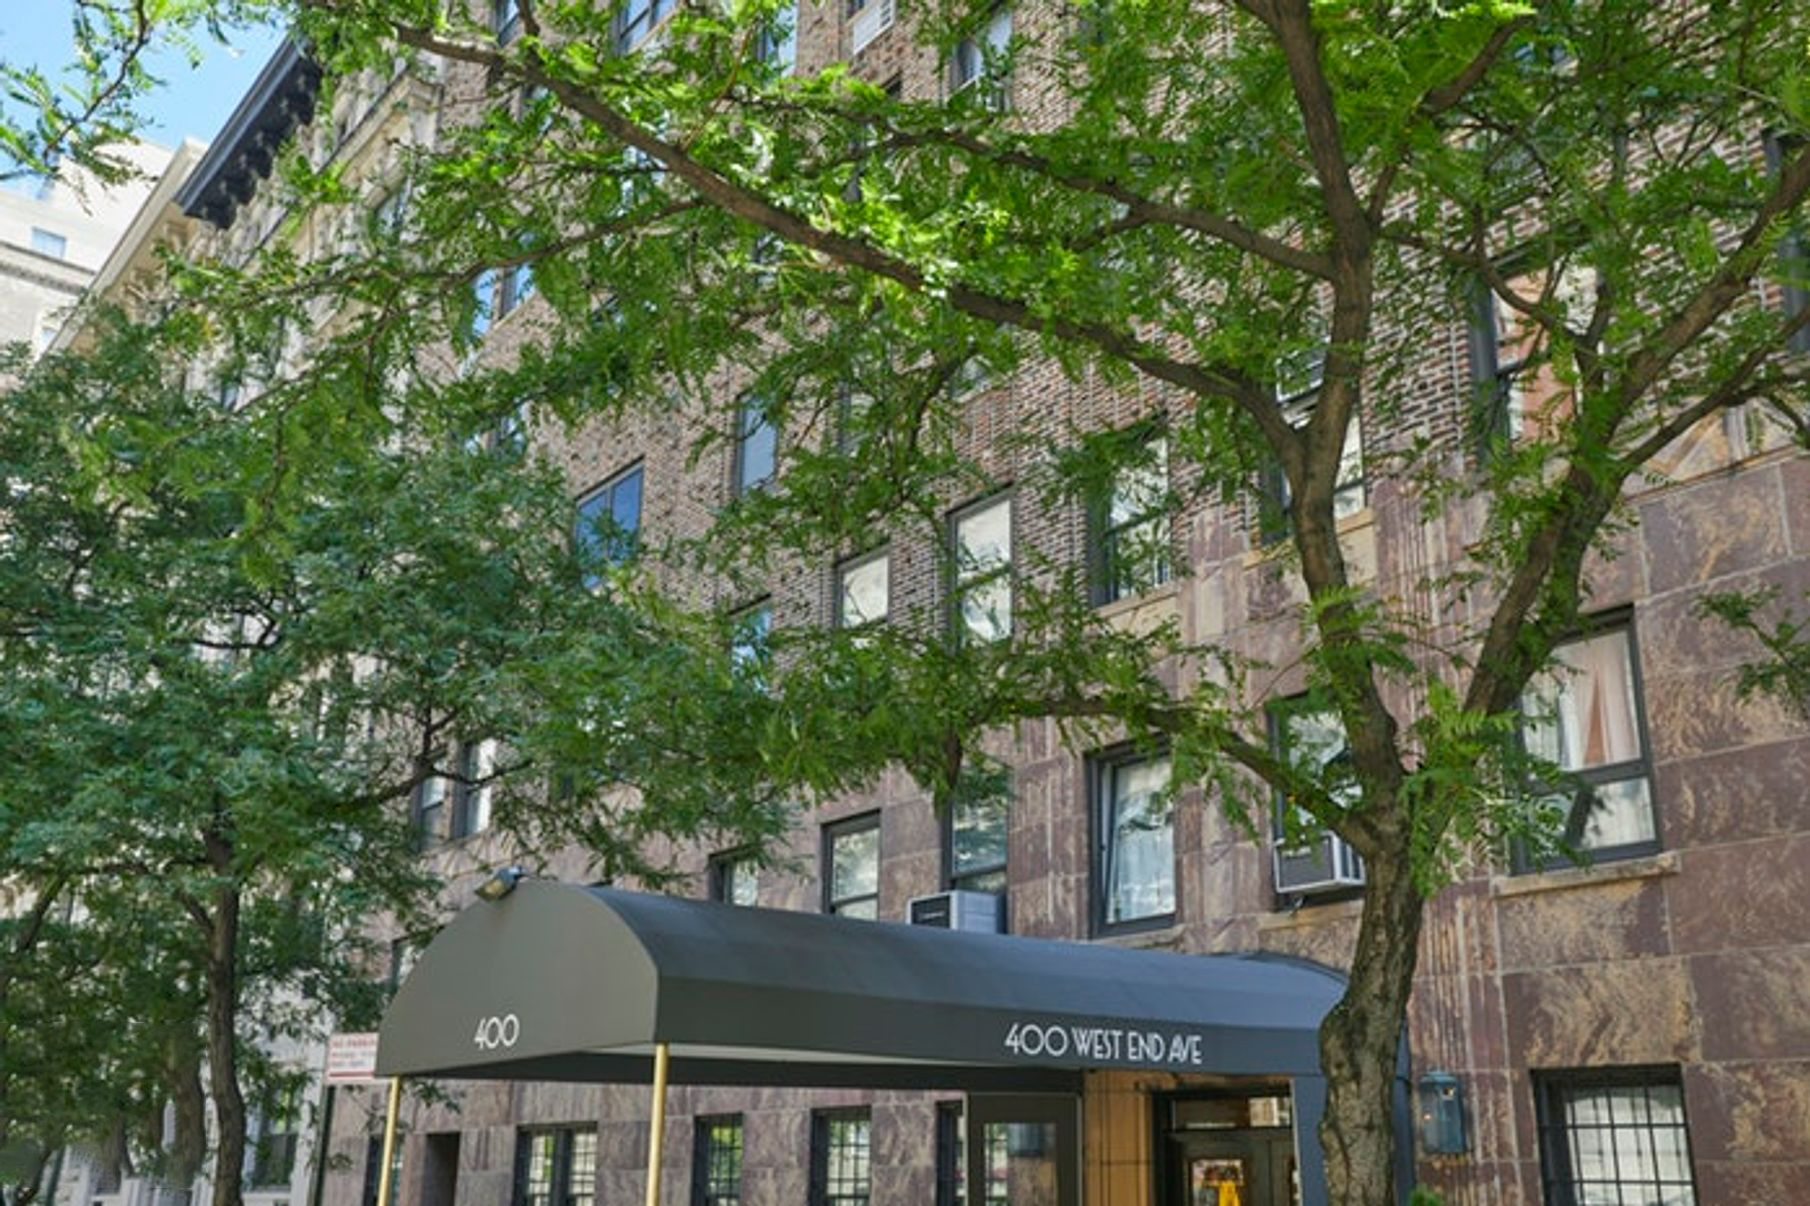 The Wexford, 400 West End Avenue